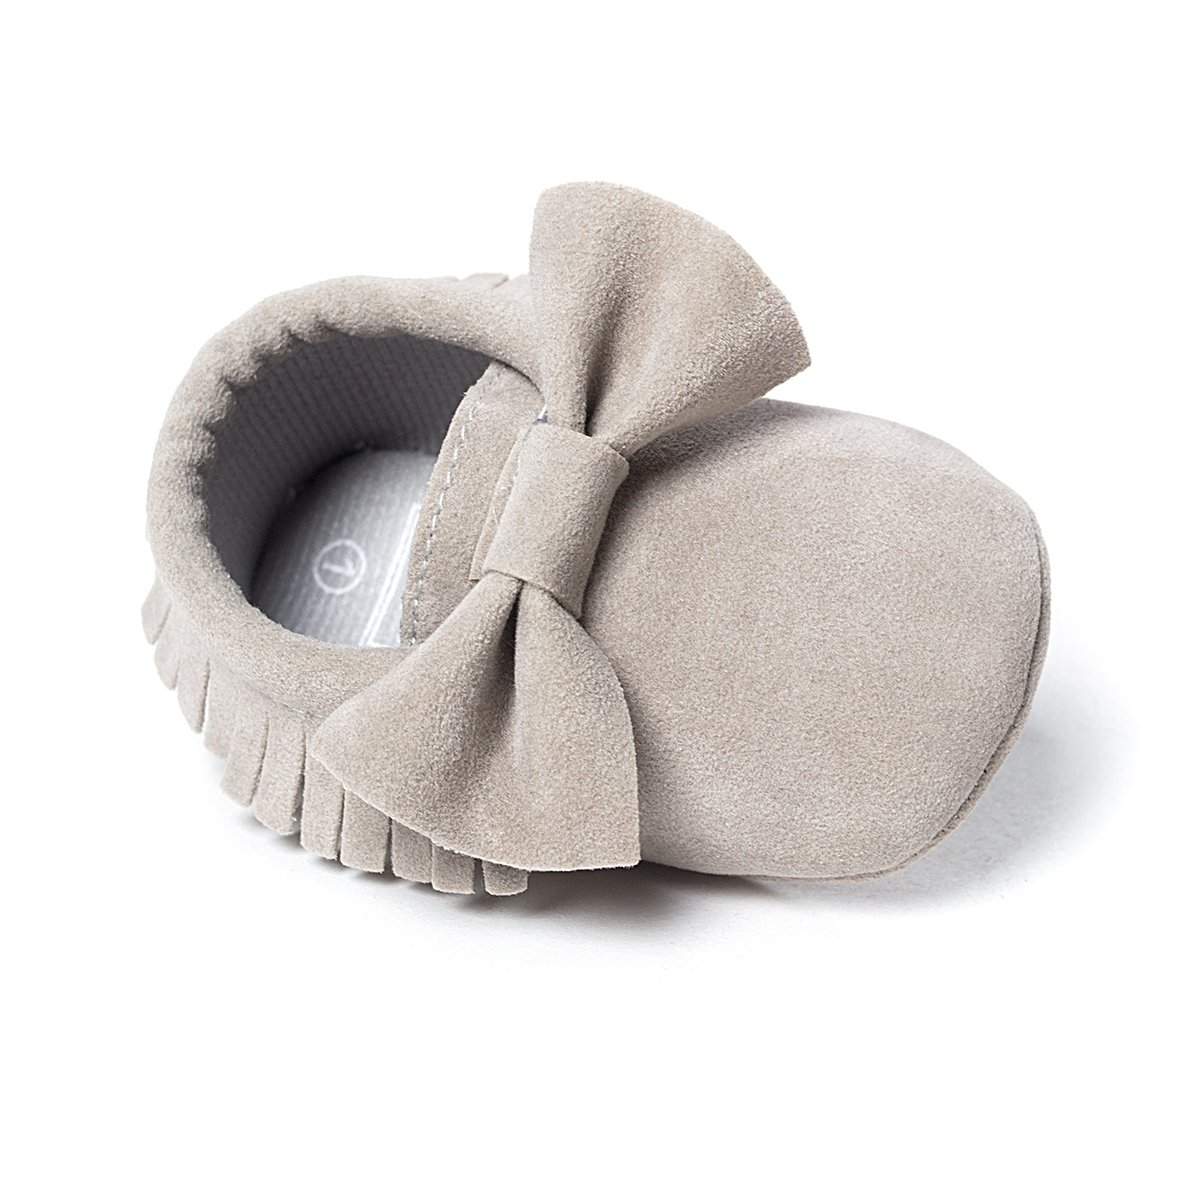 LIVEBOX Infant Baby Girls and Boys Premium Soft Sole Moccasins Tassels Prewalker Anti-Slip Toddler Shoes (M: 6~12 Months, Bow-Light Grey)